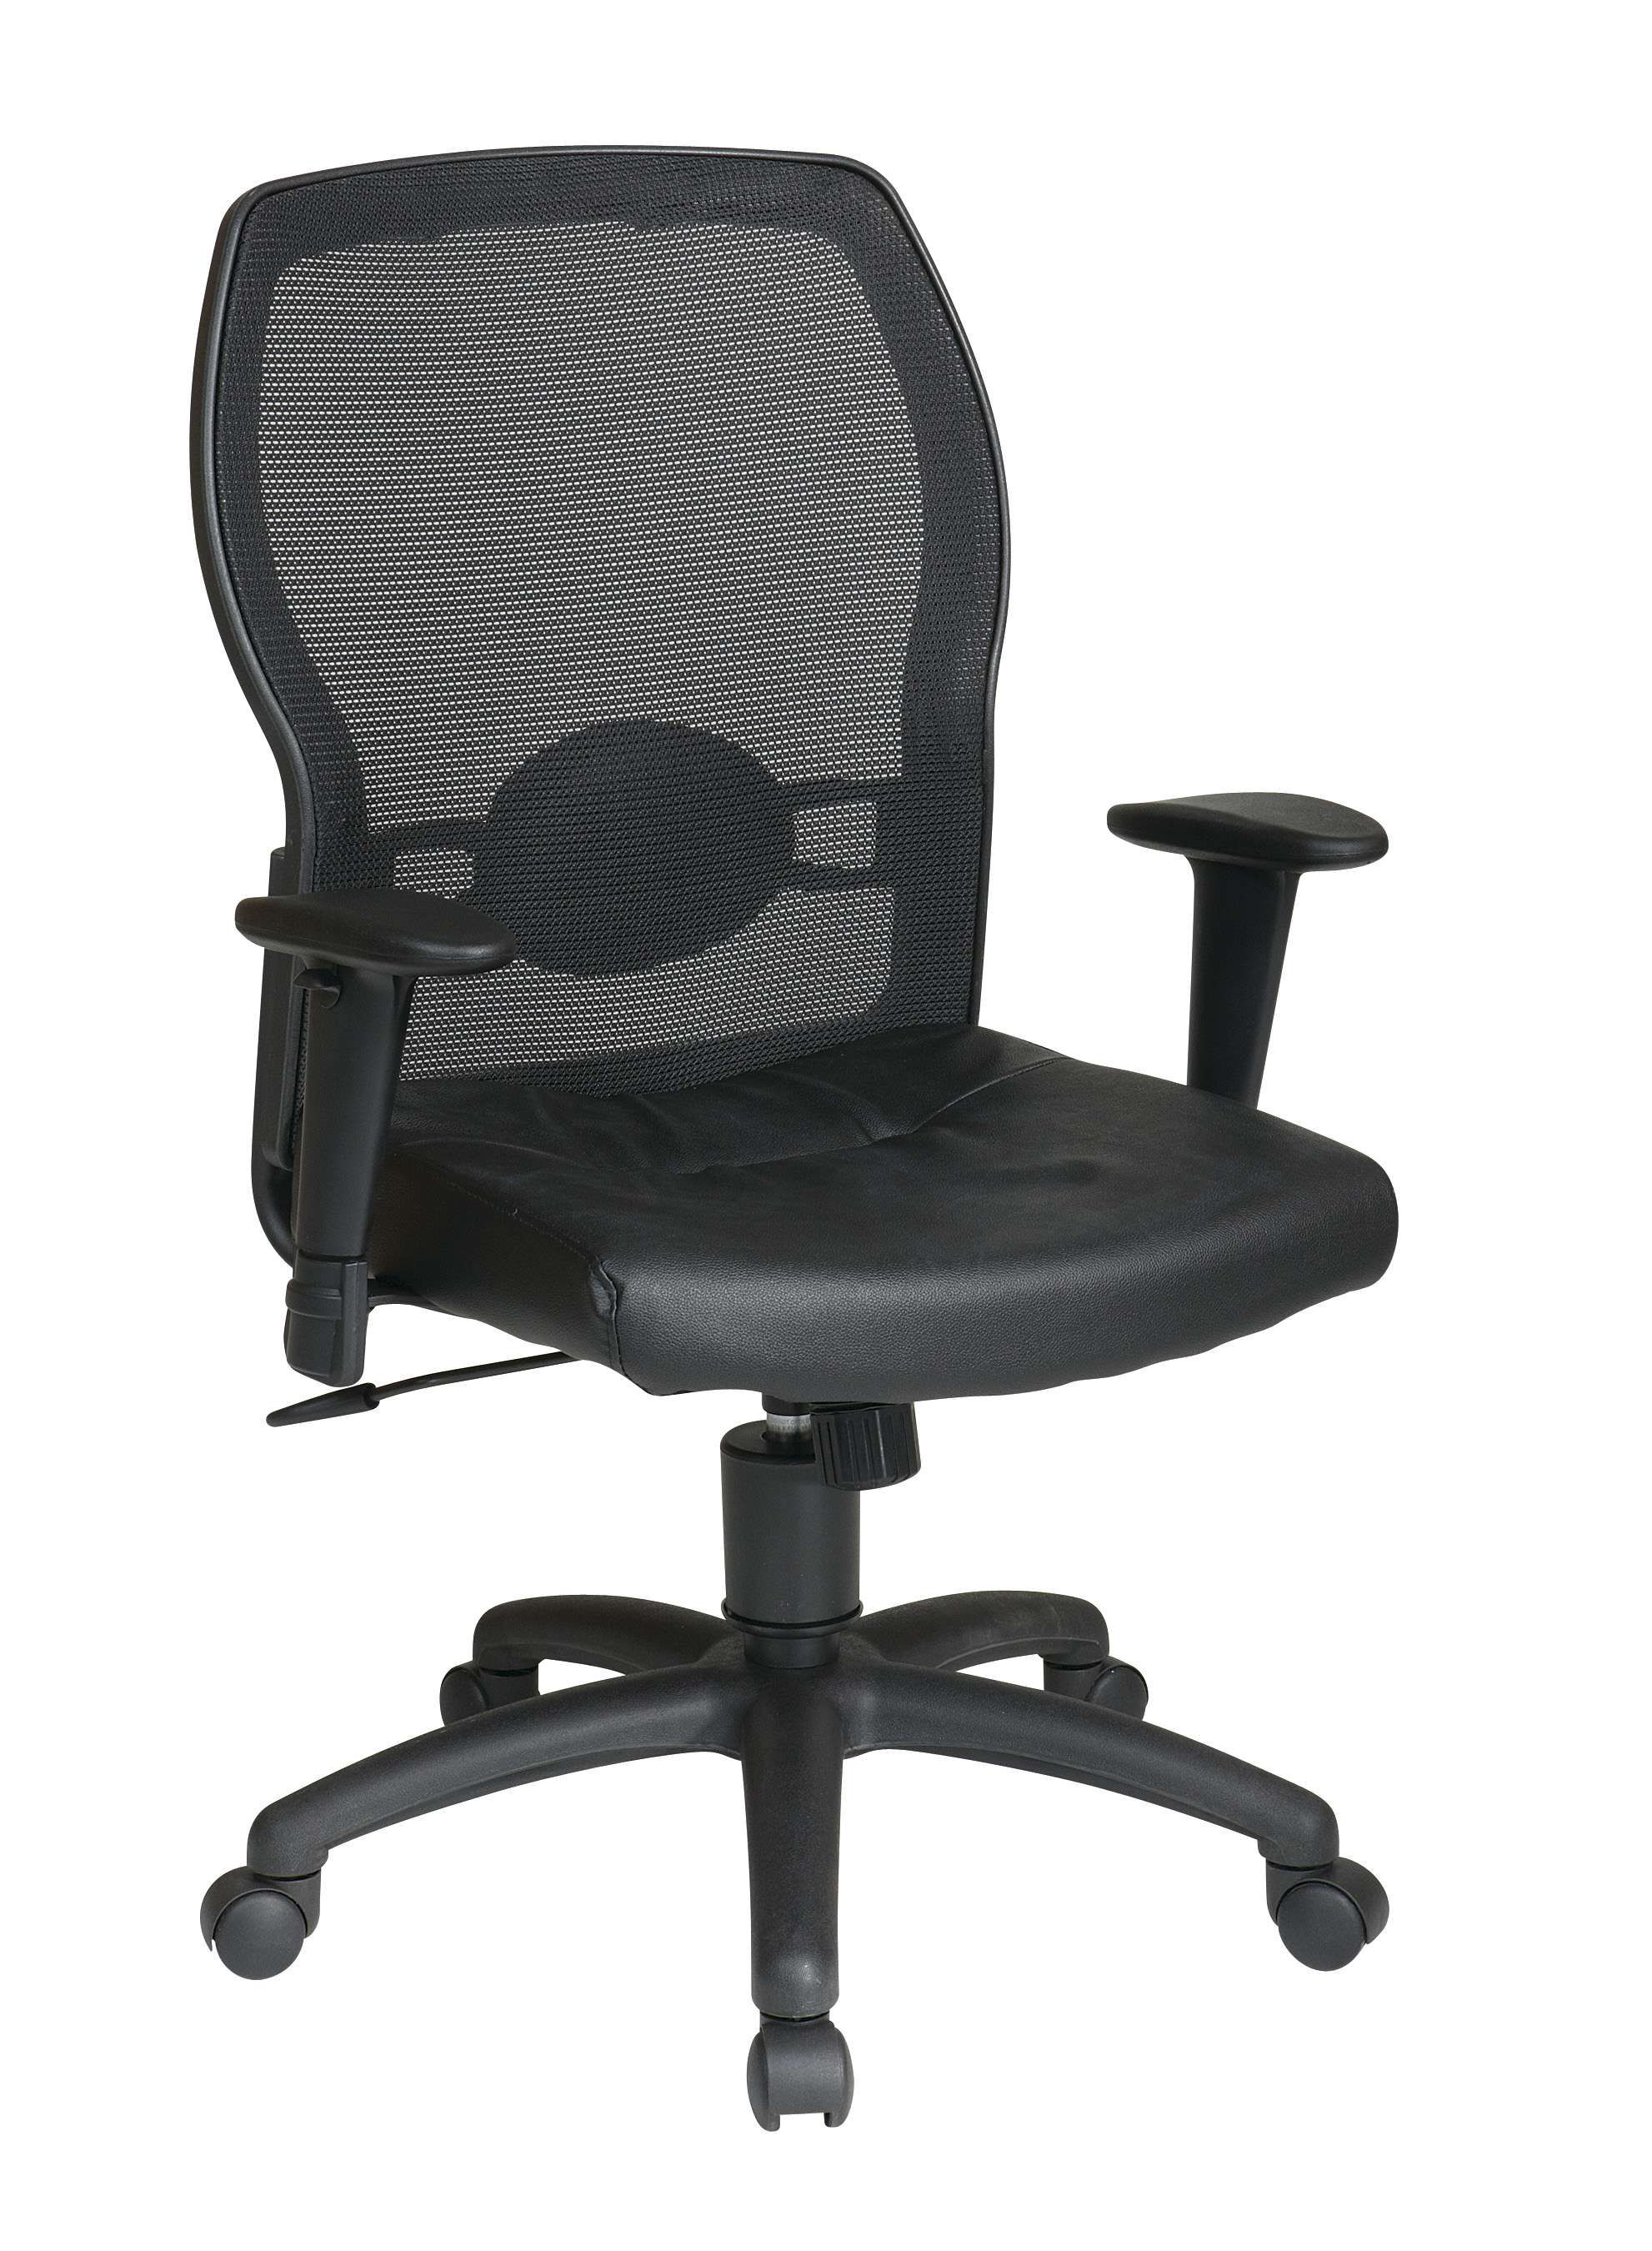 Office Star Woven Mesh Back And Leather Seat Office Chair 599402 Goedekers Com Office Star Black Office Chair Office Chair